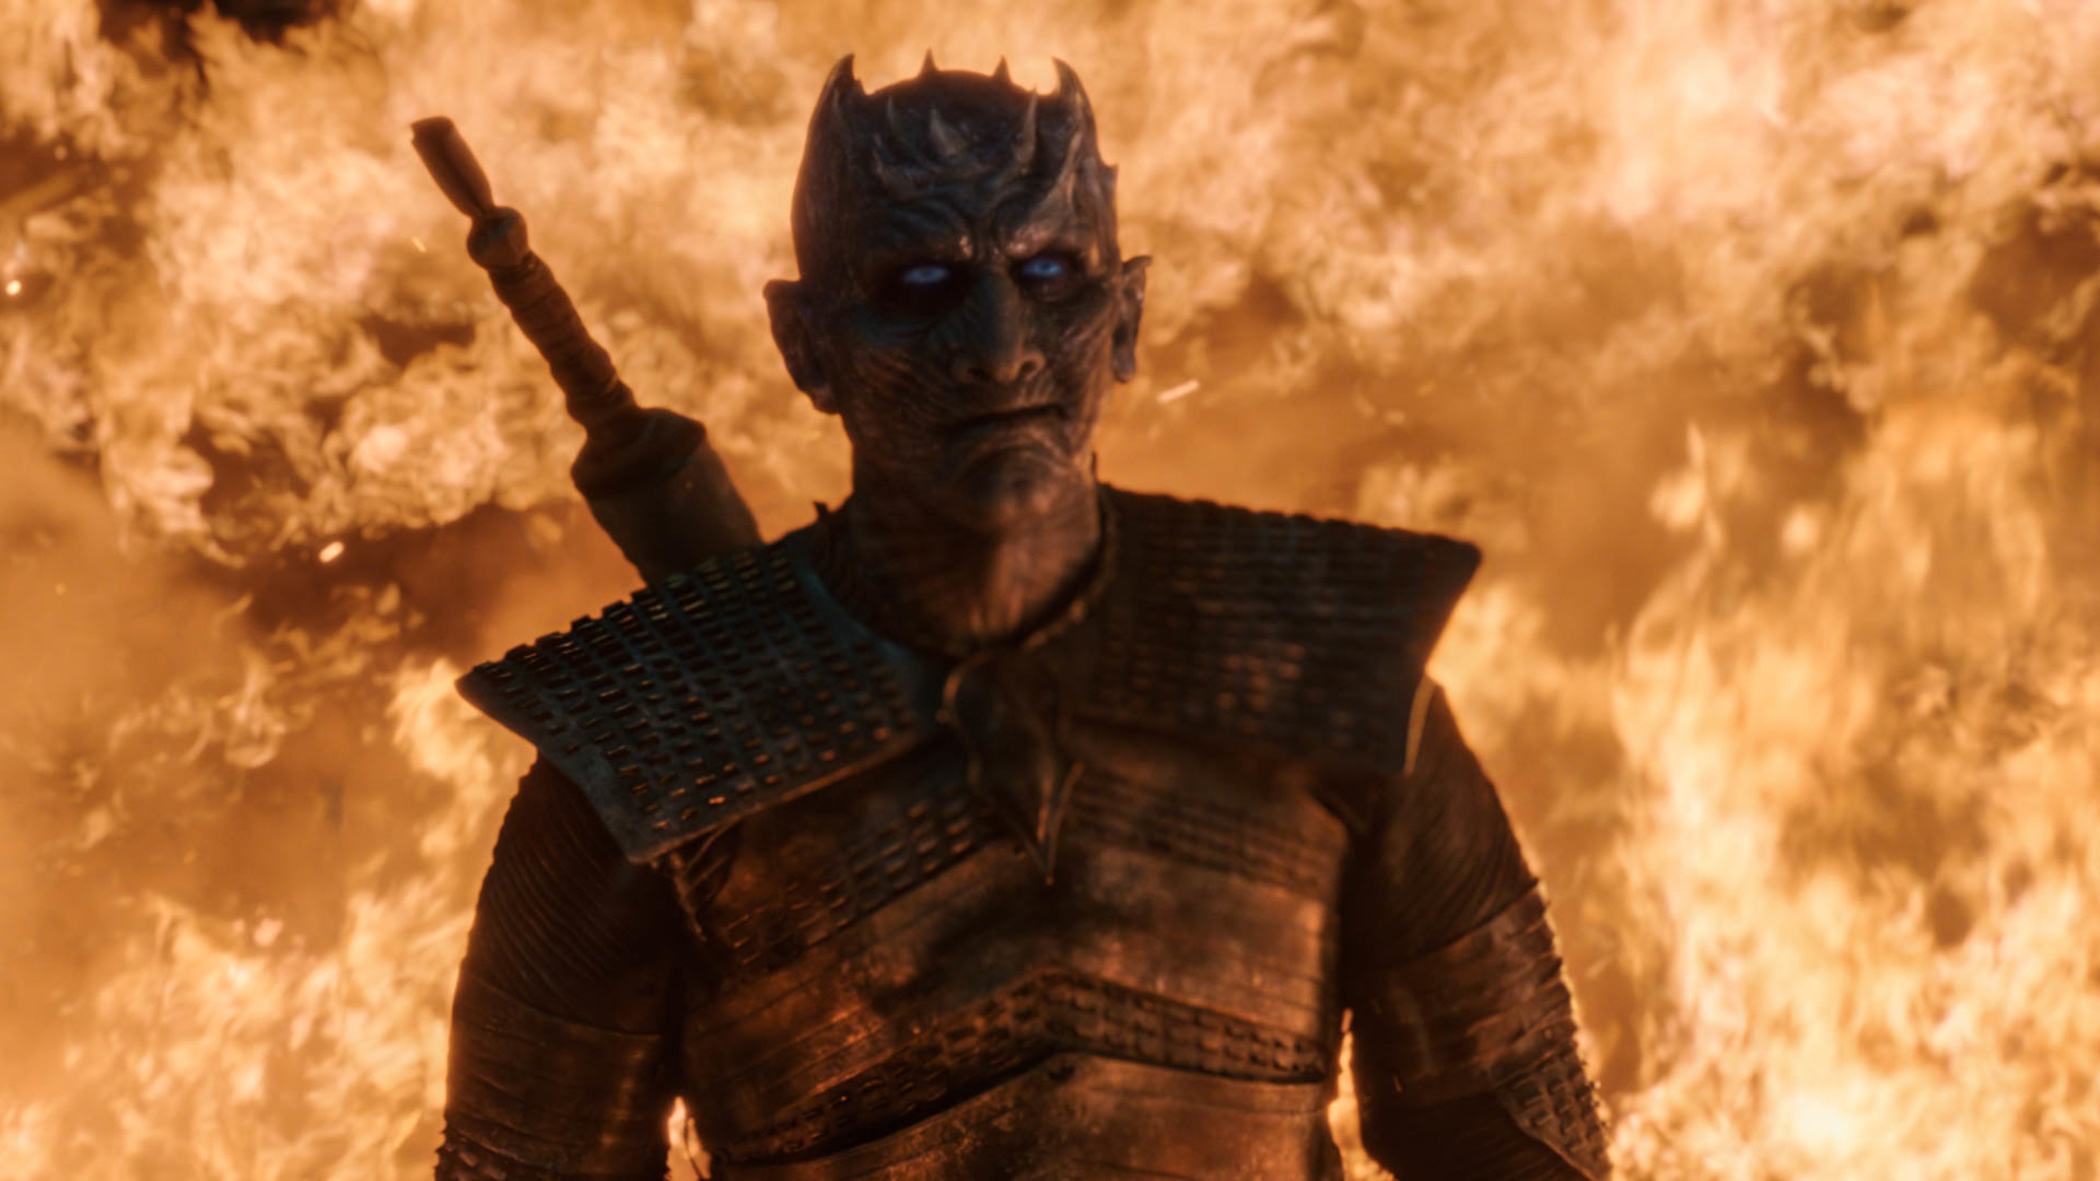 This person won Game of Thrones and Twitter has very, very strong feelings